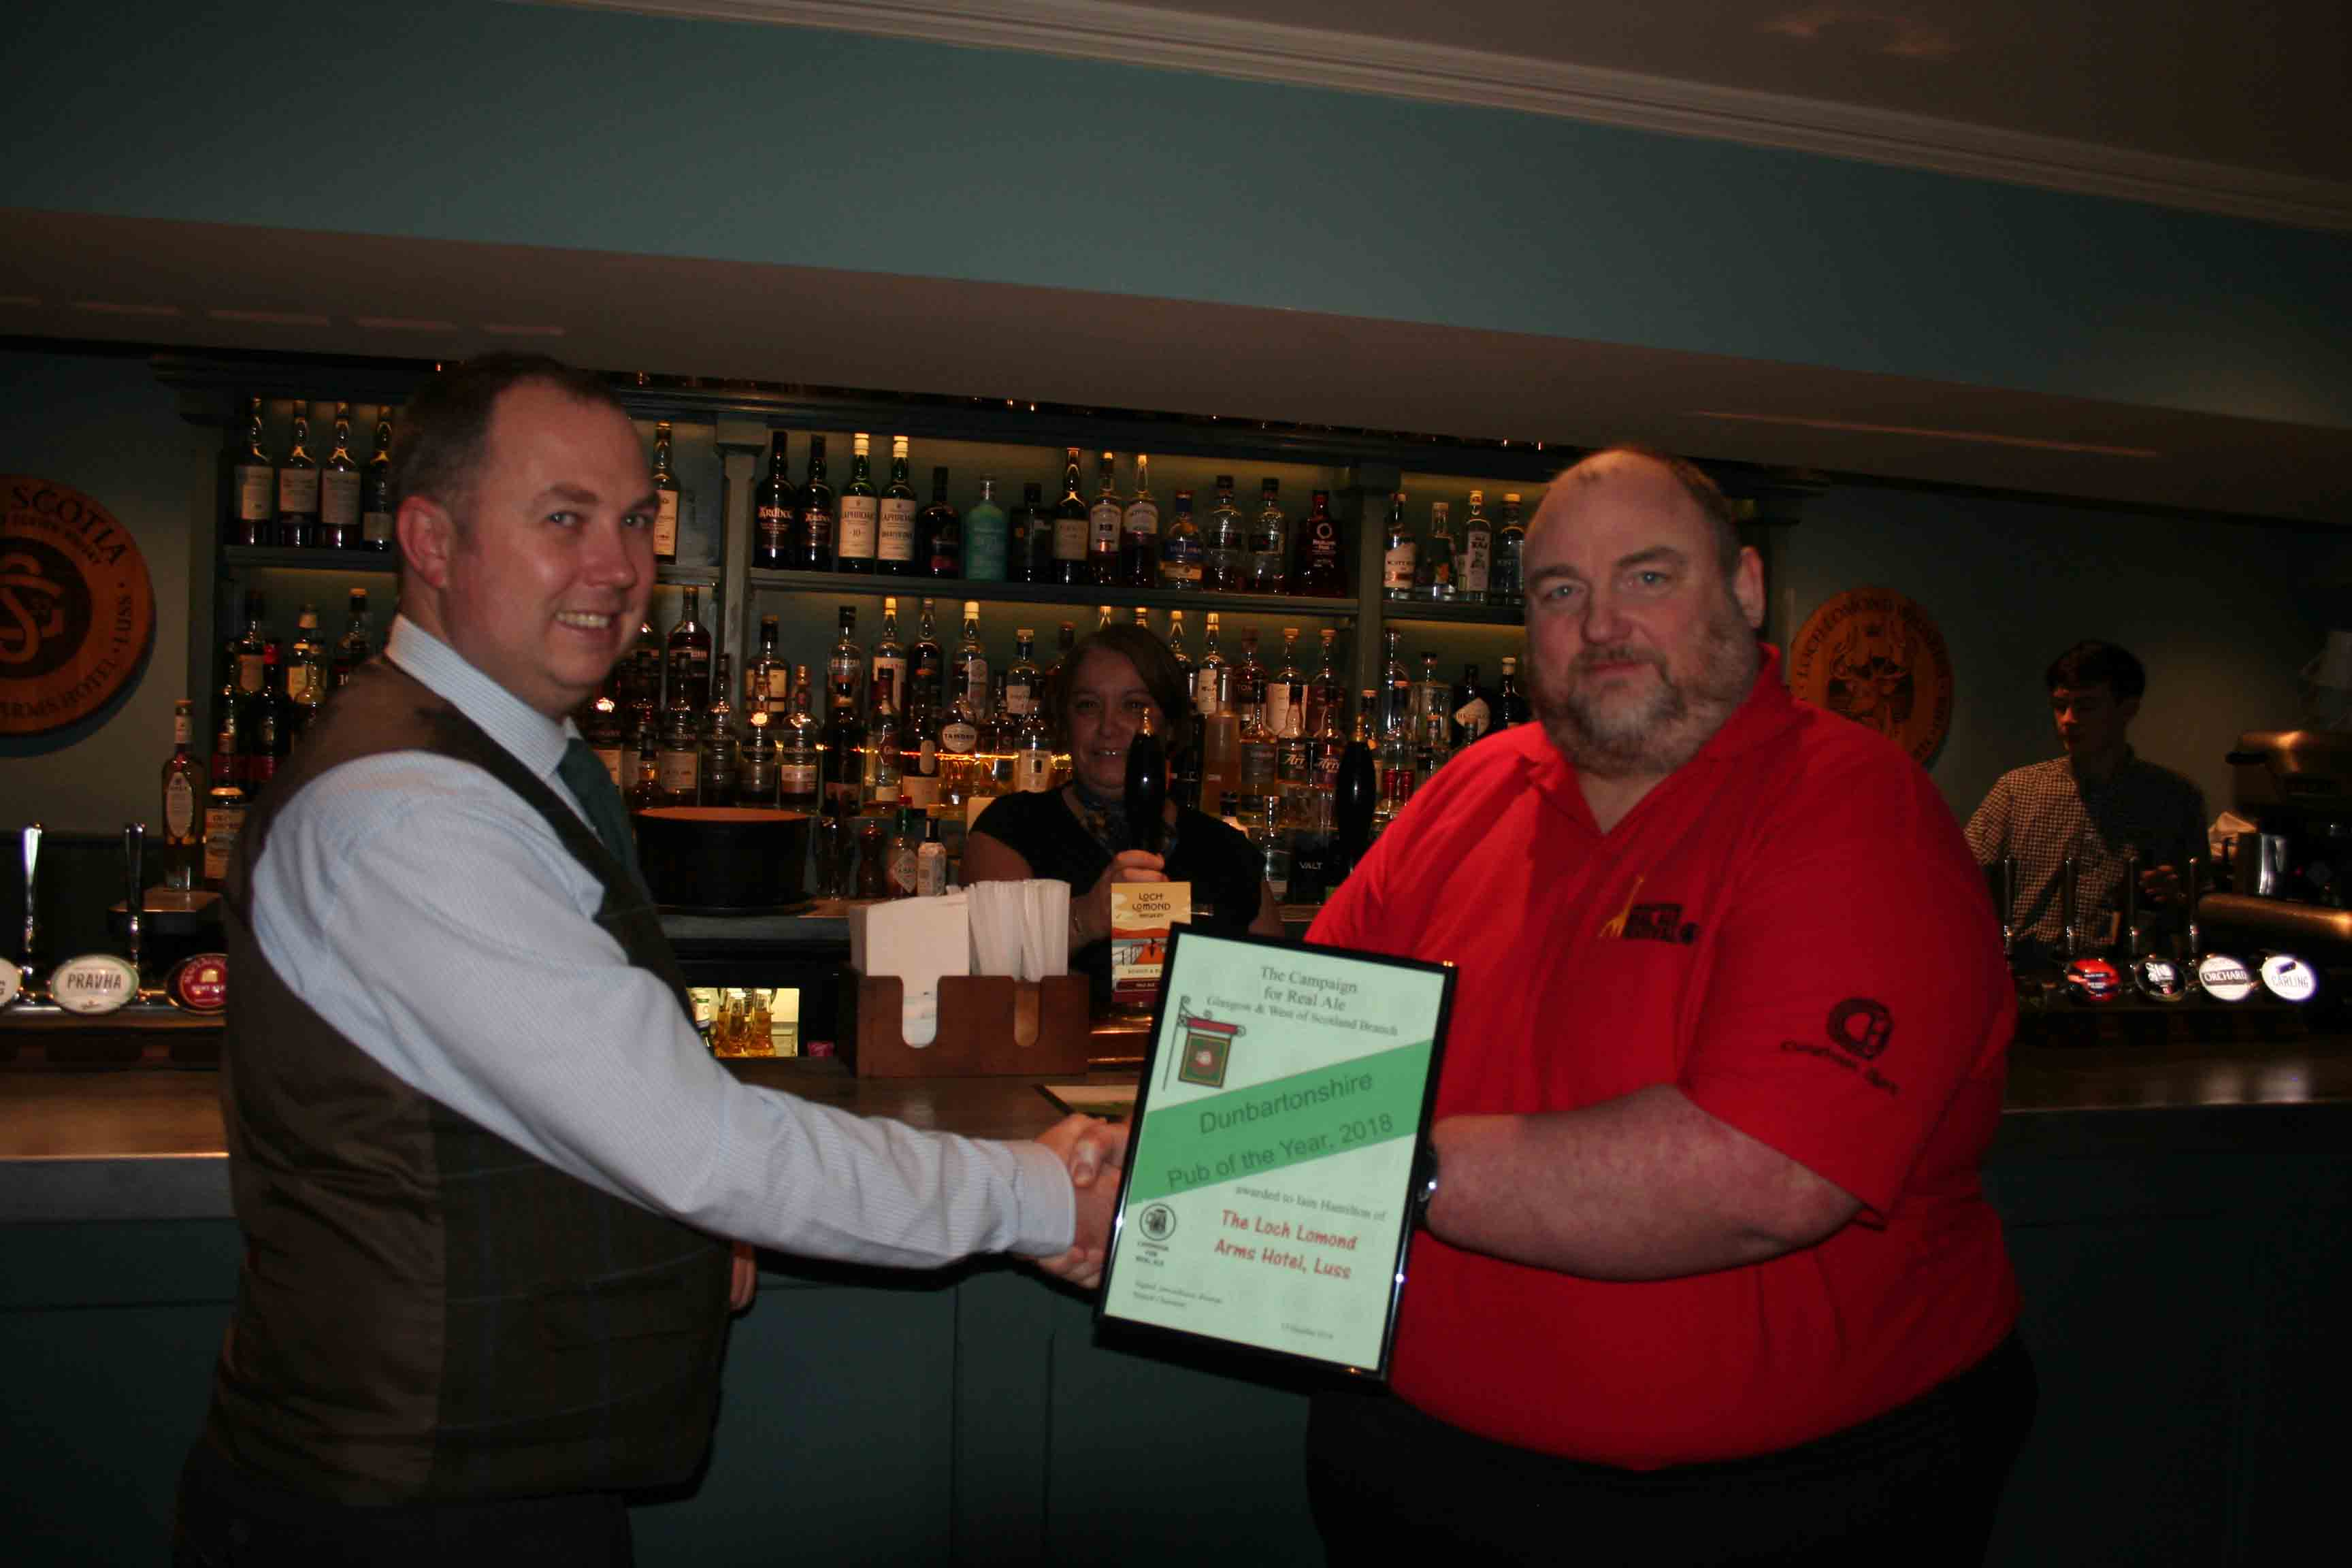 Dunbartonshire Pub of the Year